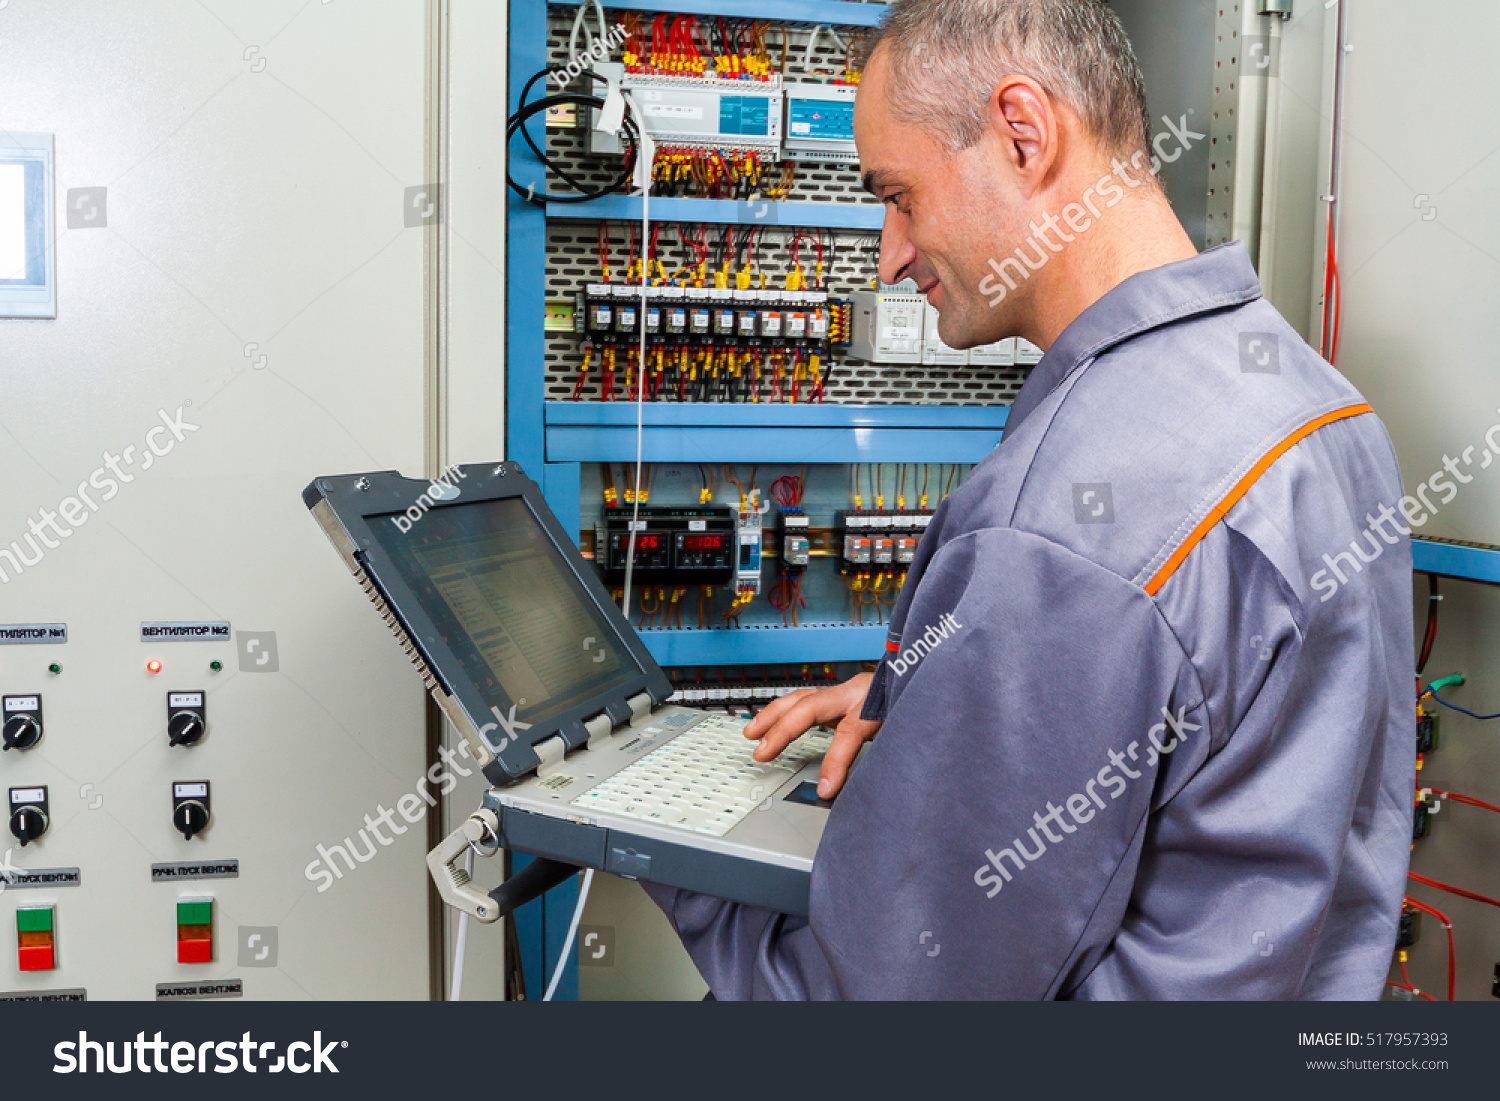 Electrician Builder Engineer Screwing Testing Equipment Stock Photo Industrial Fuse Box And In Machine Repairing